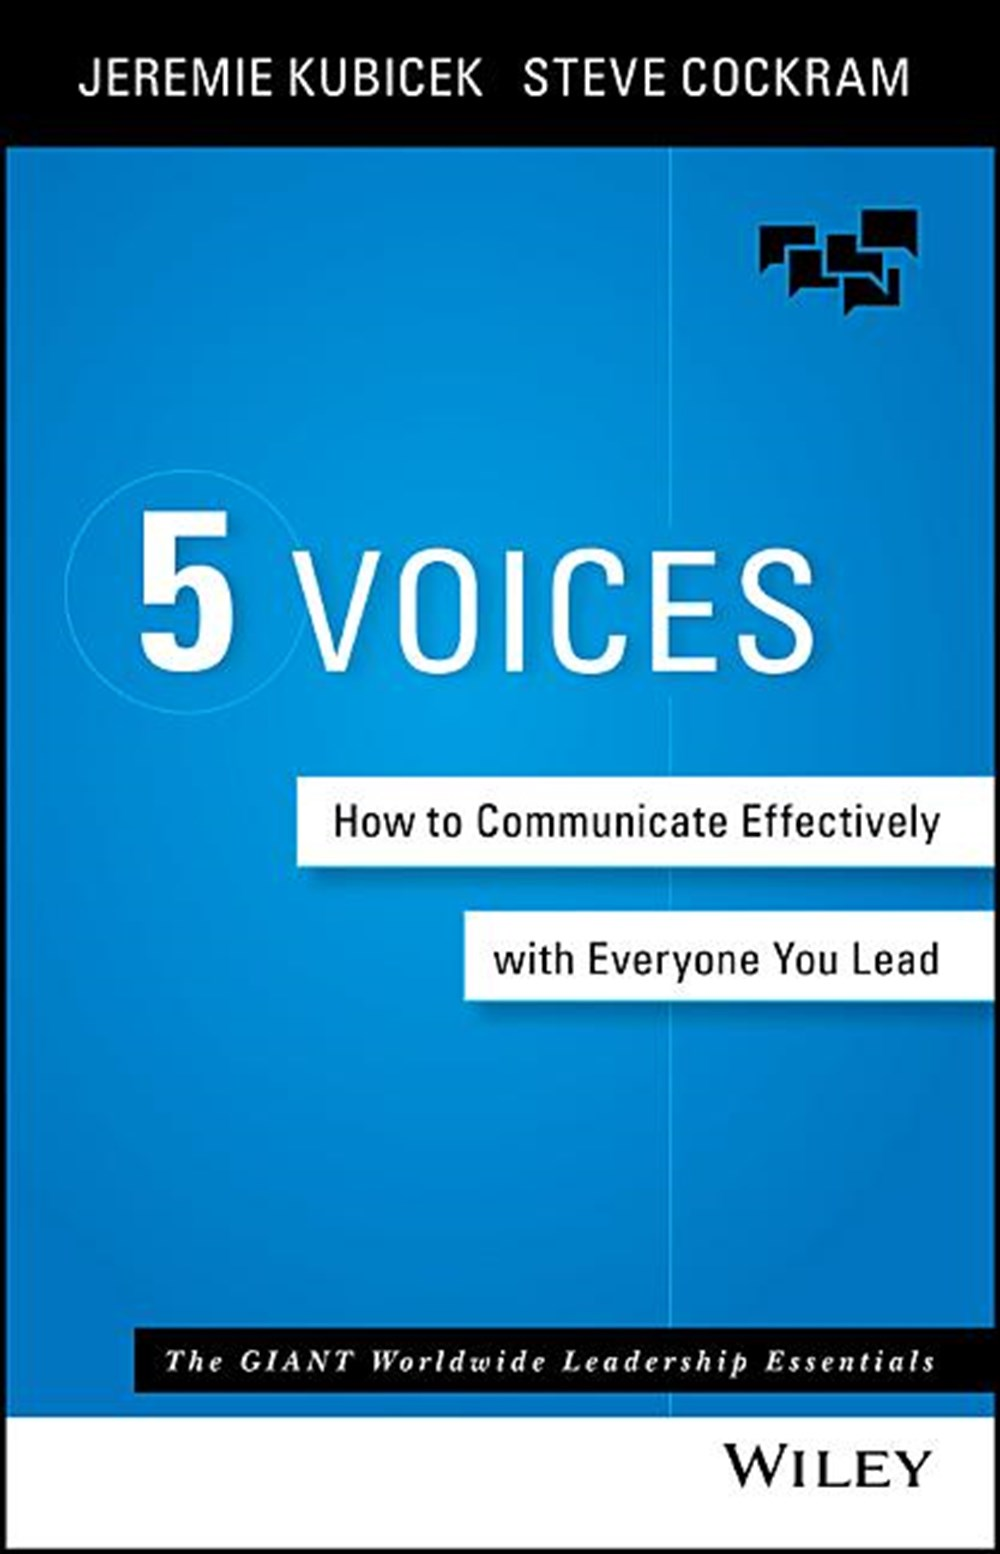 5 Voices How to Communicate Effectively with Everyone You Lead